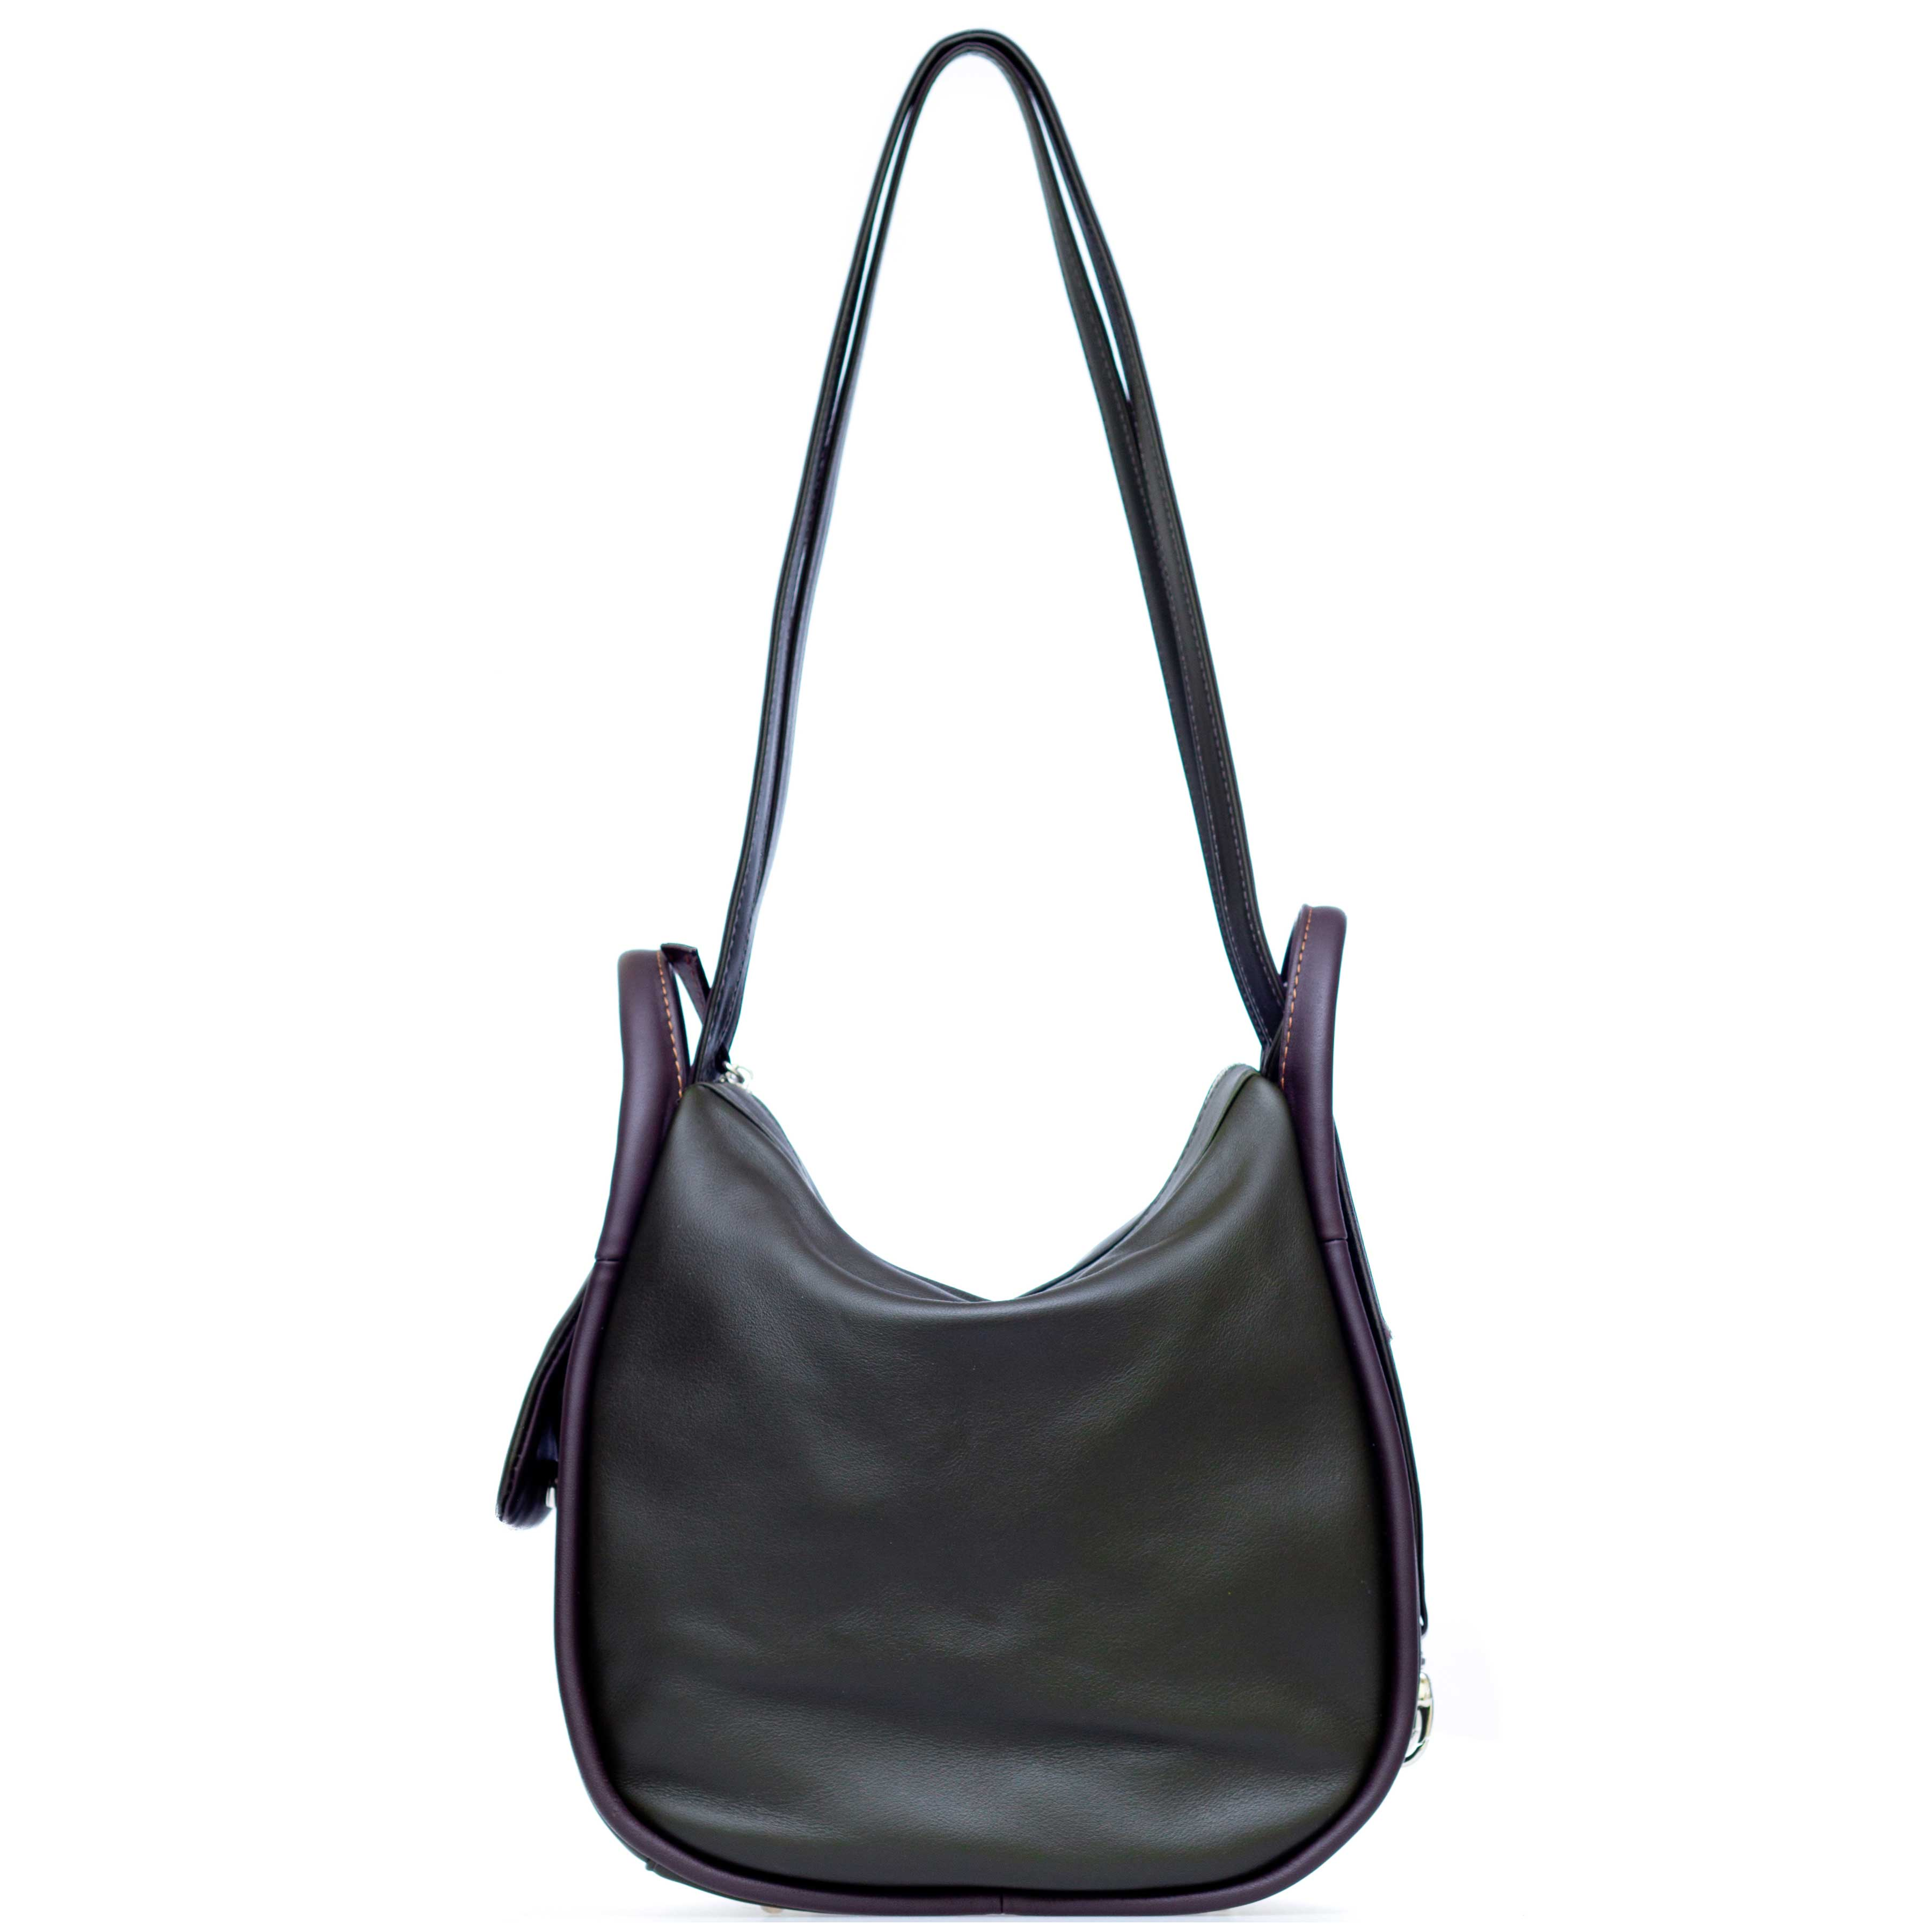 Bruno Rossi Italian Made Dark Moss Green Calf Leather Convertible Hobo Bag Backpack